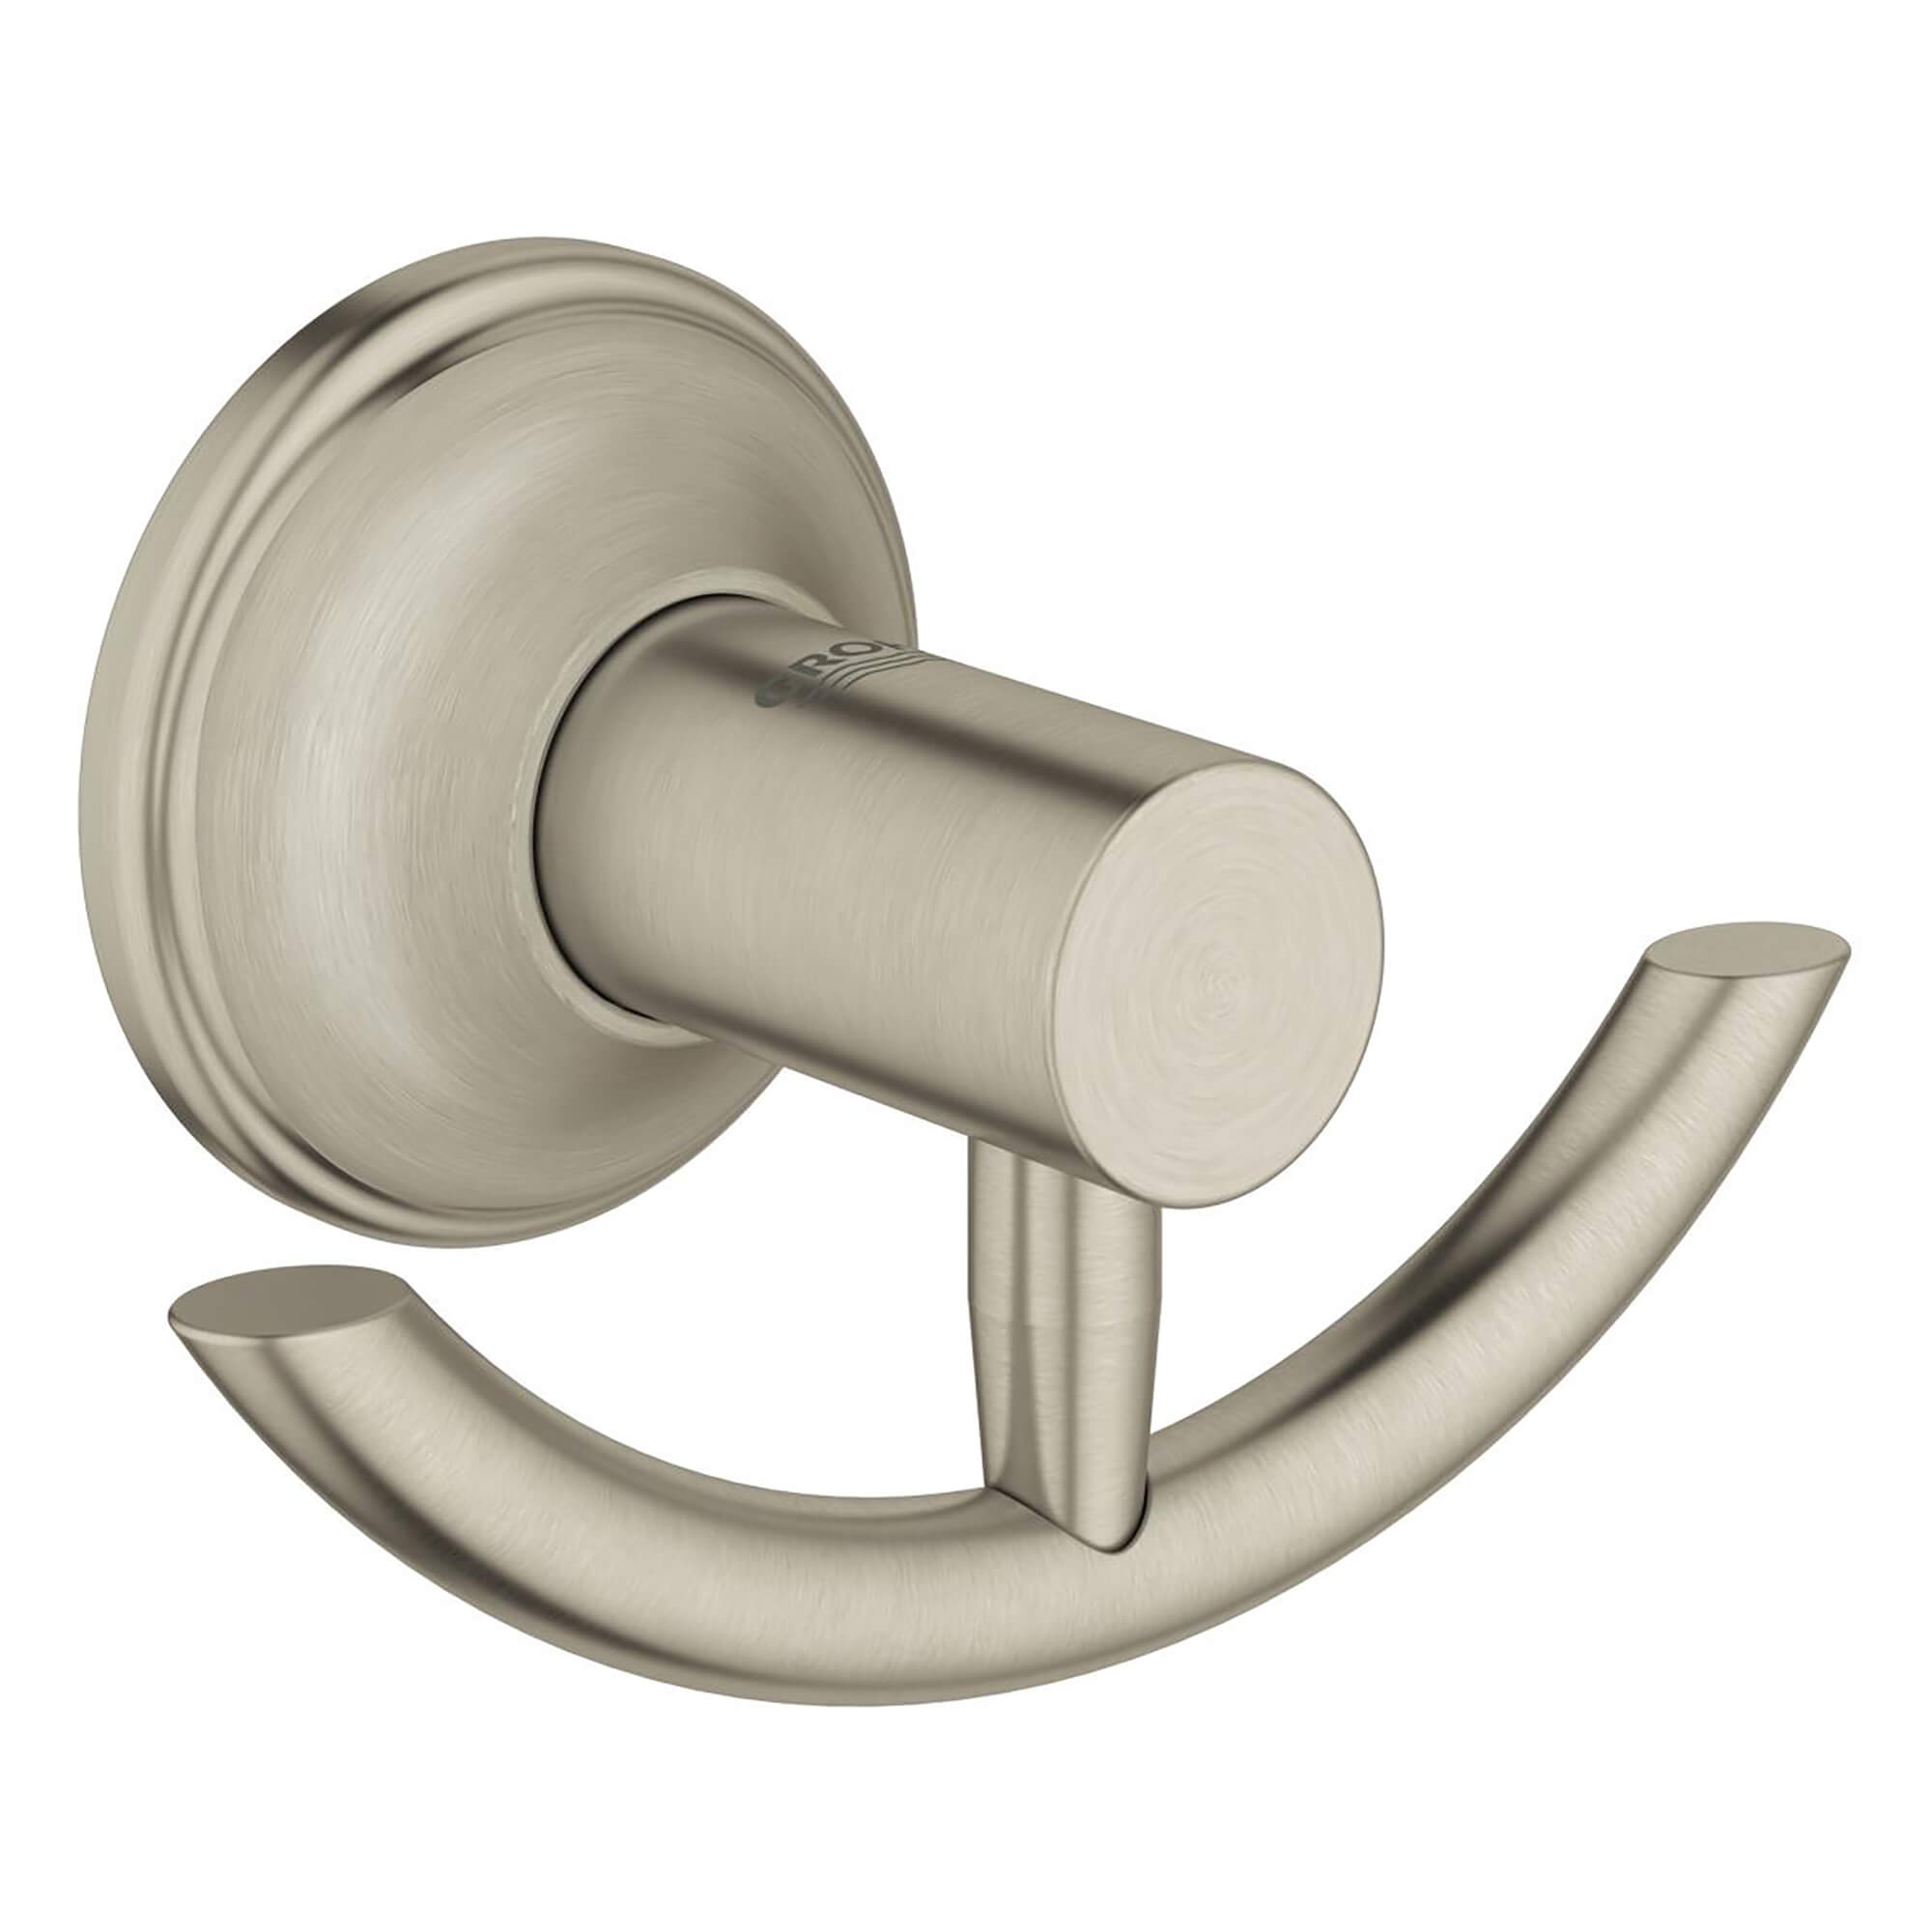 Porte manteau  patère GROHE BRUSHED NICKEL